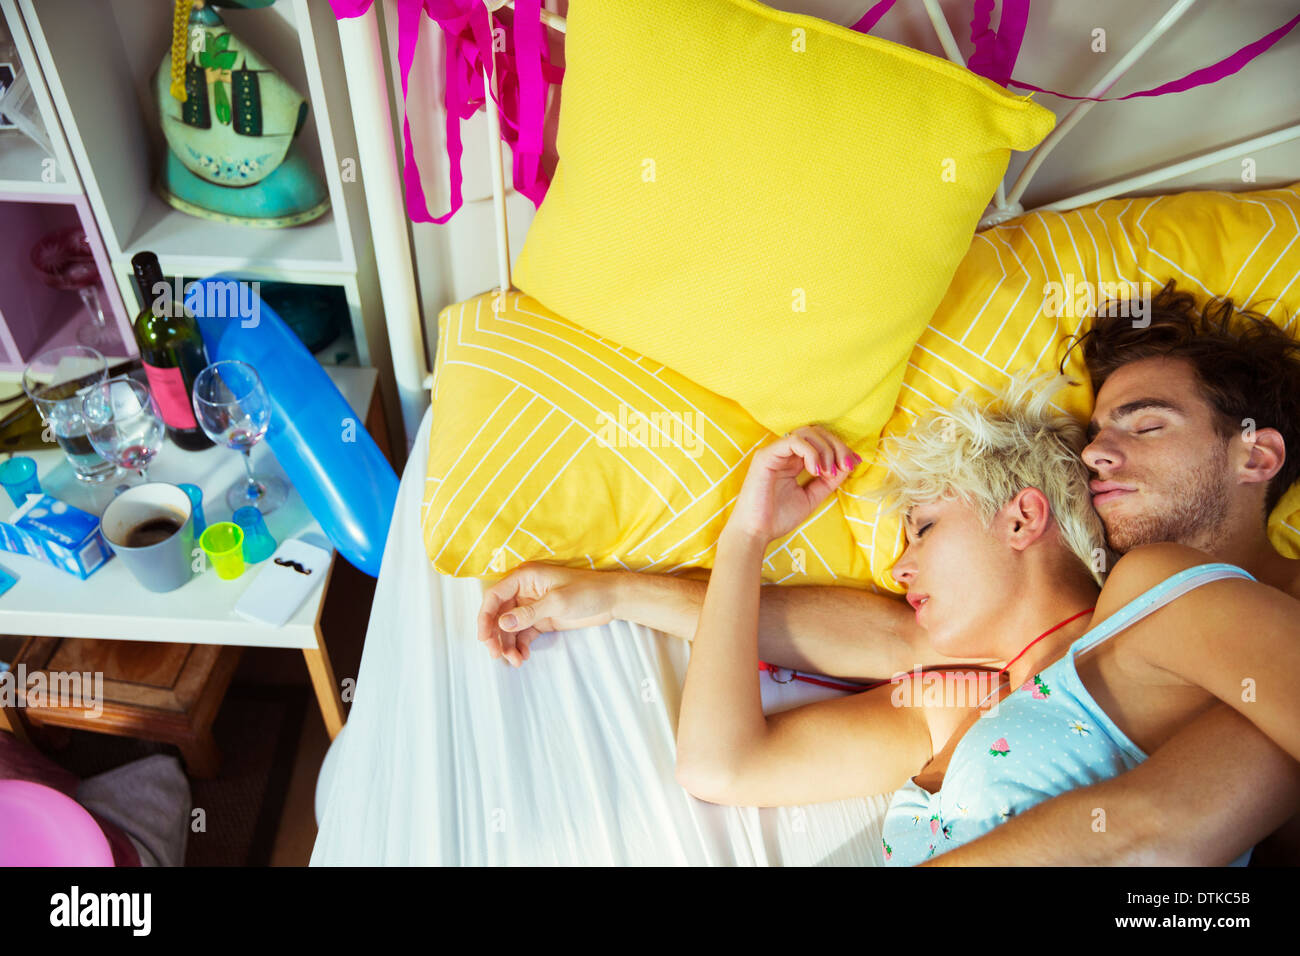 Couple sleeping in bed after party - Stock Image